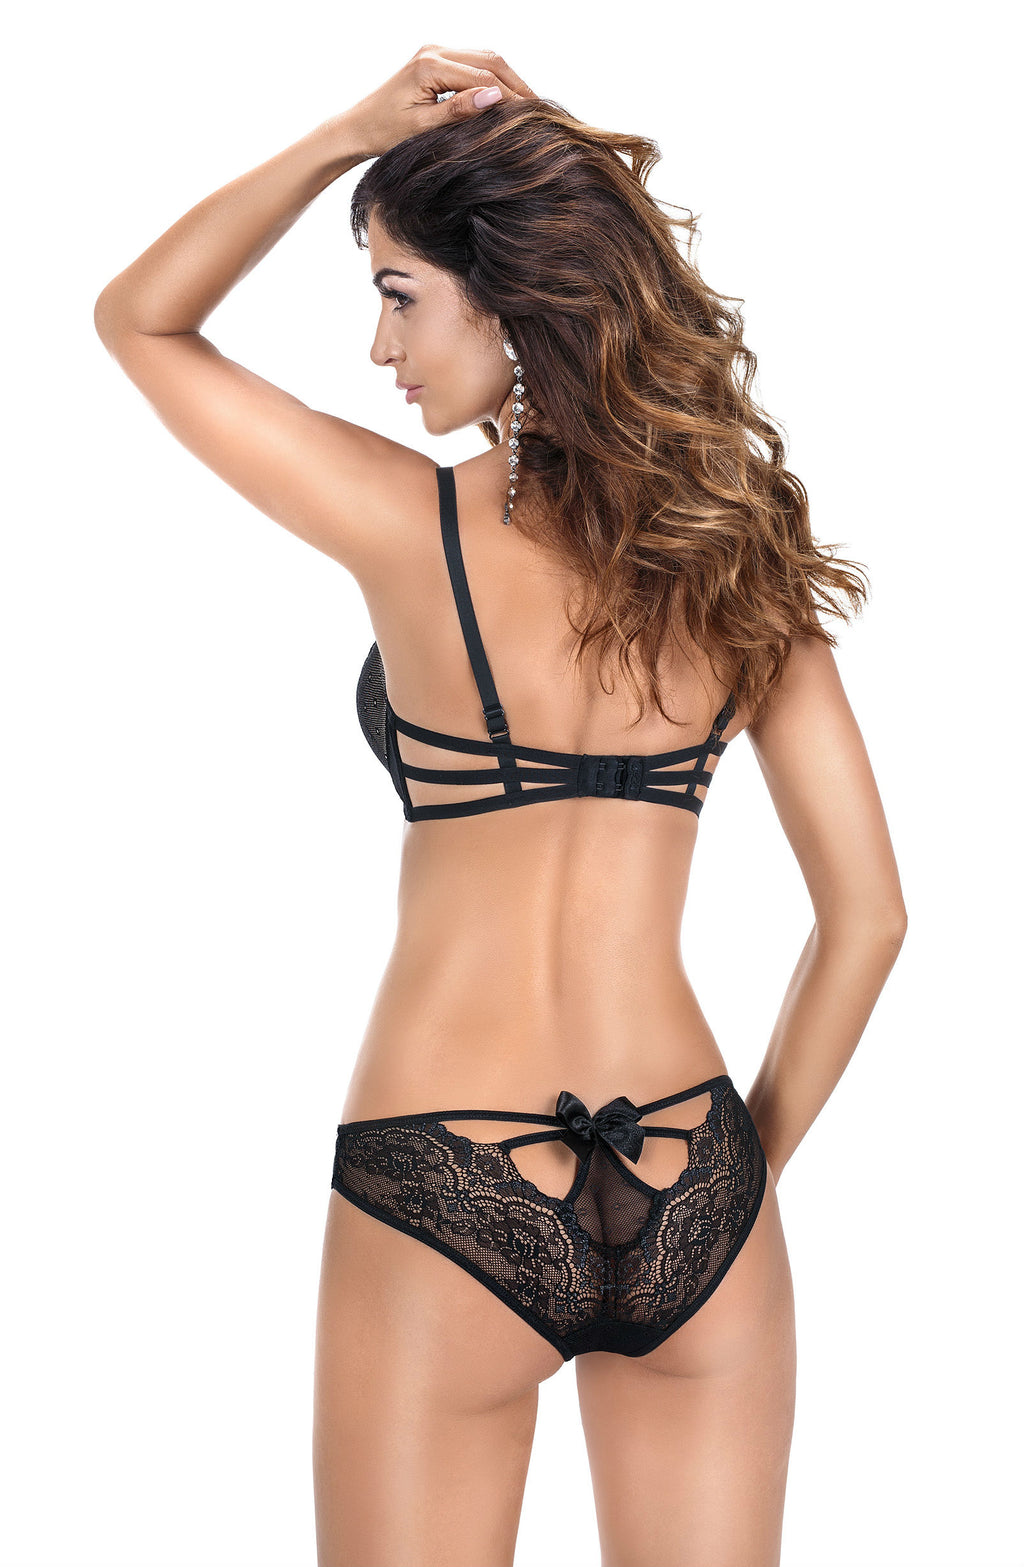 Roza Zulaj Push Up Bra Black